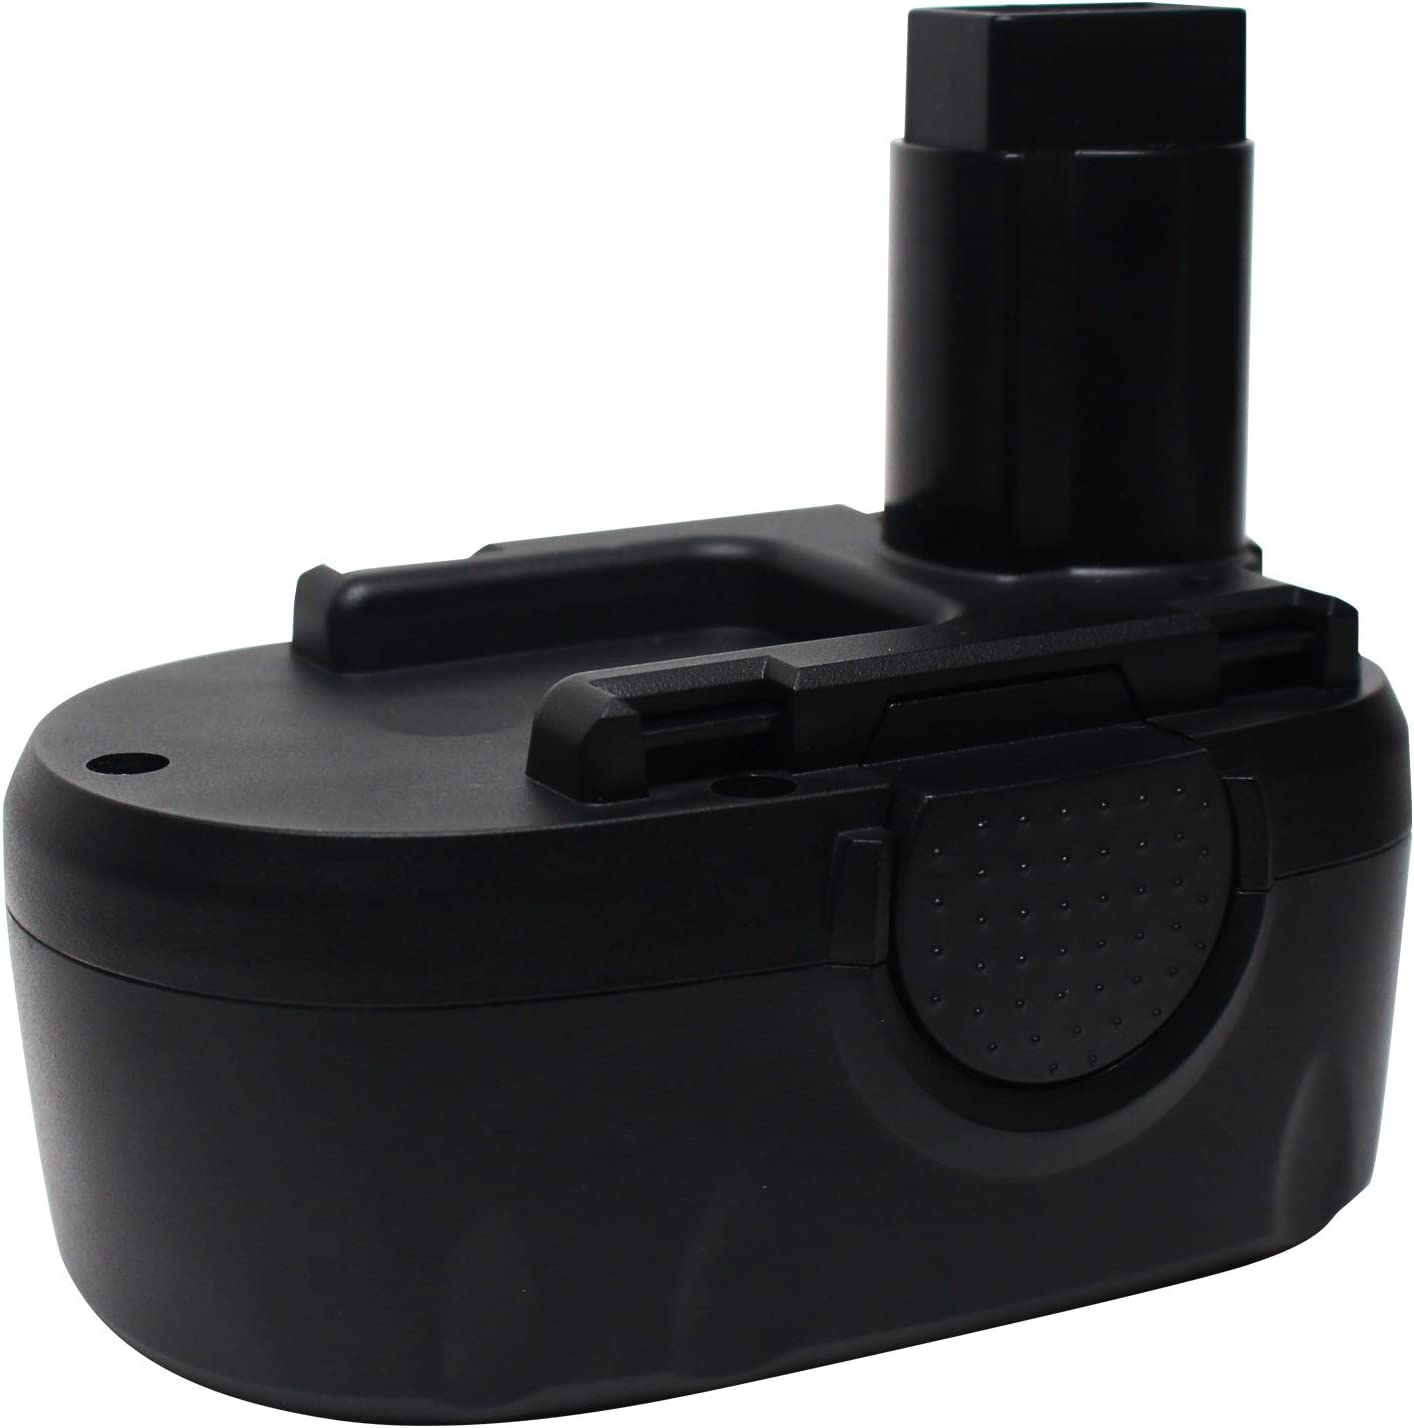 Replacement for Worx WA3127 Battery - Compatible with Worx 18V Power Tool Battery (1500mAh, NICD)